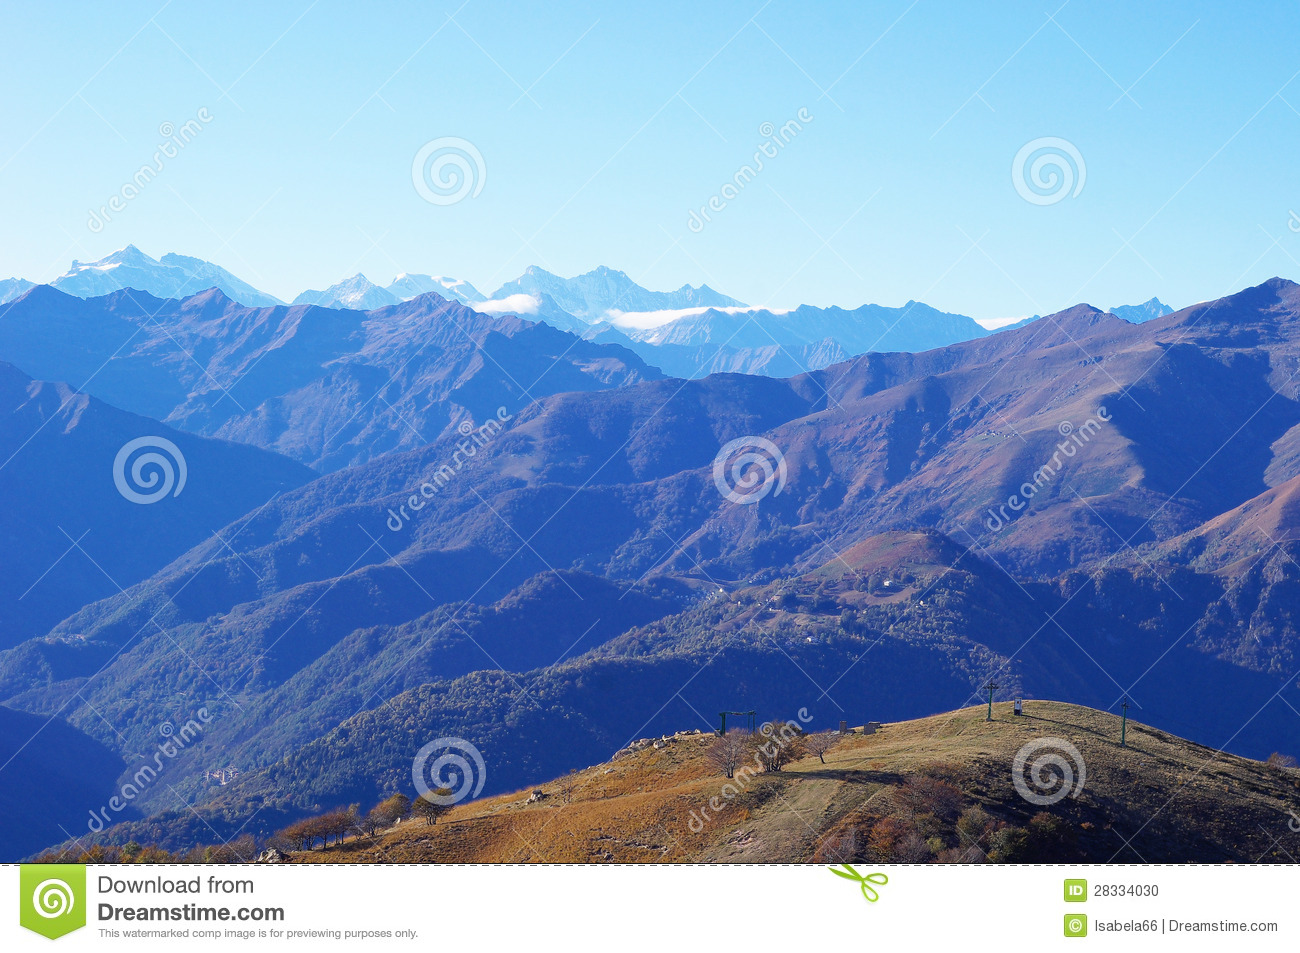 Download Panorama Of Western Alps And Northern Italy Stock Photo - Image of panorama, town: 28334030